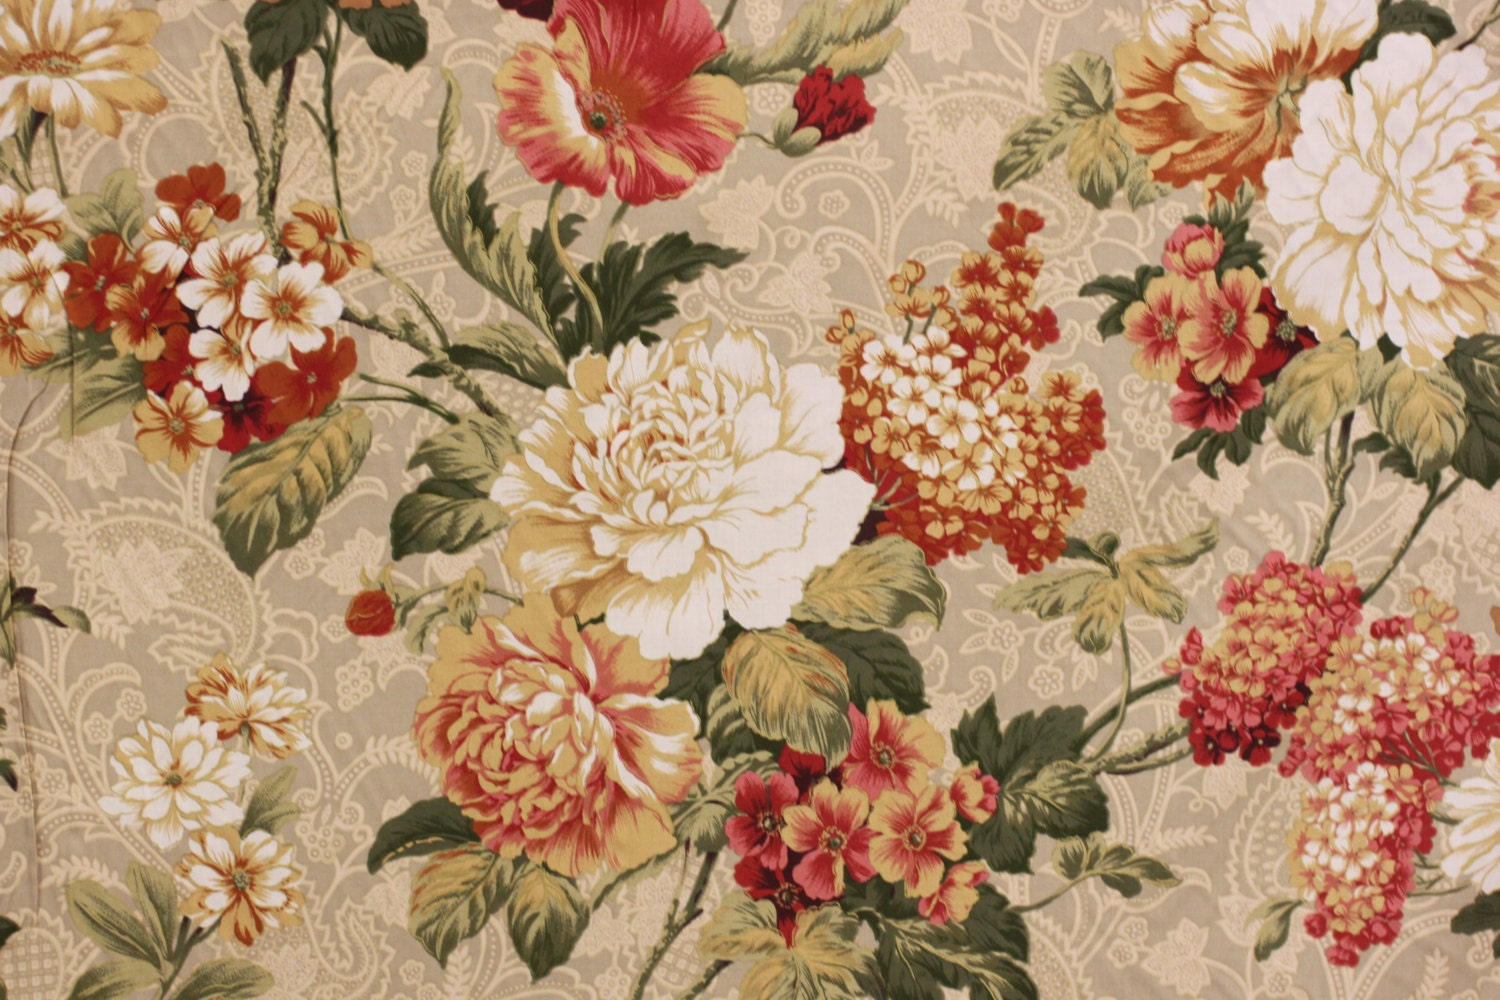 Fabric vintage floral print by richloom fabric for drapery for Floral upholstery fabric